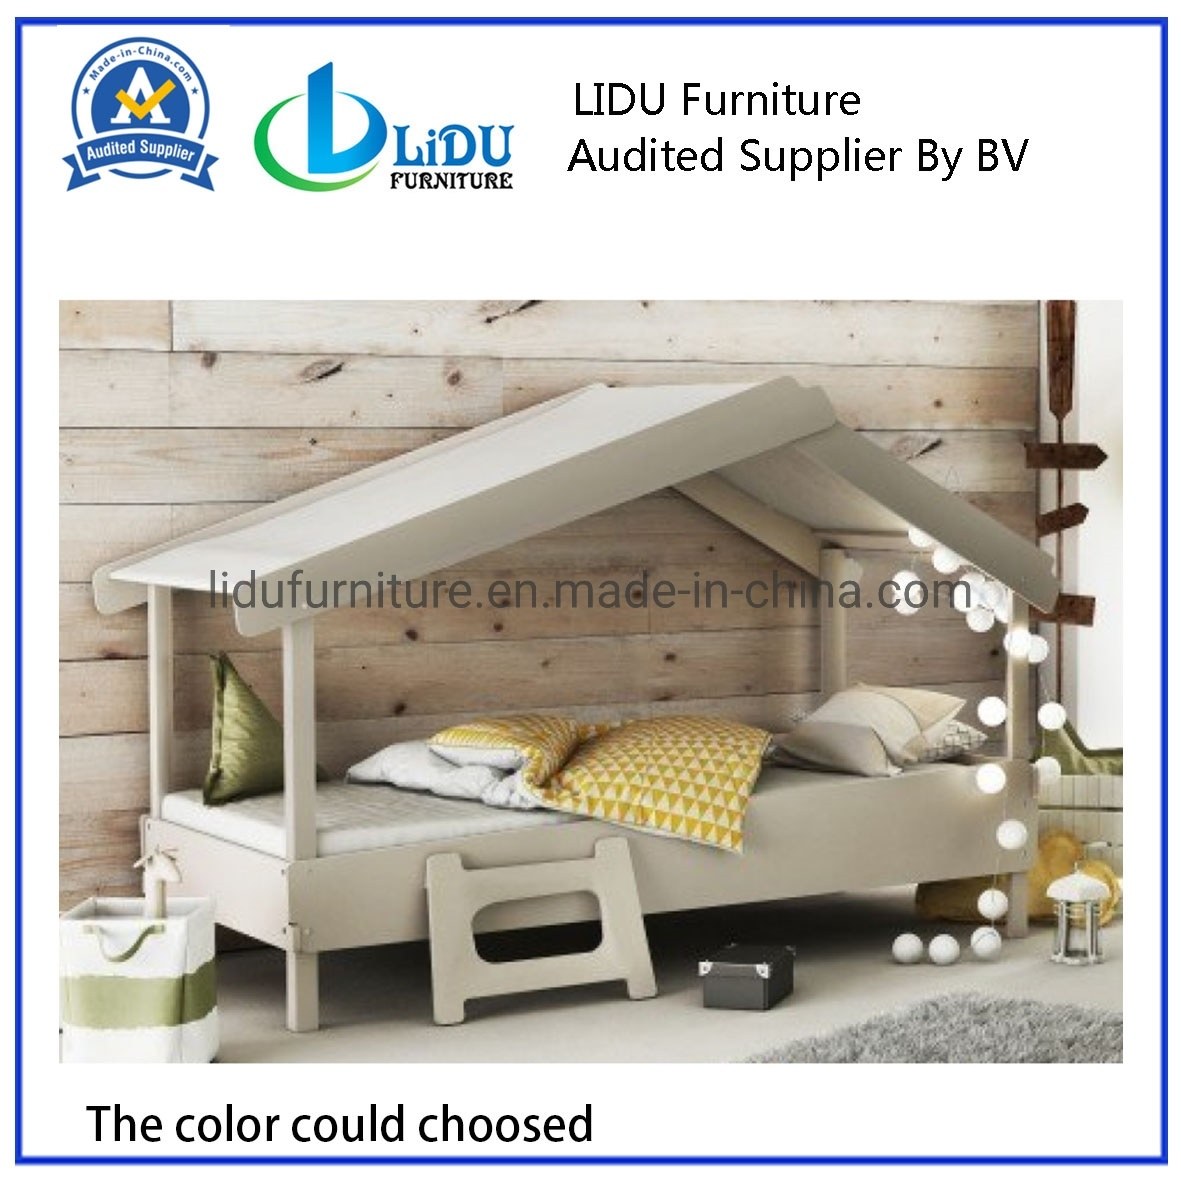 Modern Bedroom Furniture Saving Space Solid Wooden Bed Treehouse House Style Natural Pine Wooden Kids Bed Frame Wooden Bed Bunk Bed Children S Bed Safe Bed China Wooden Bed Kid S Bed